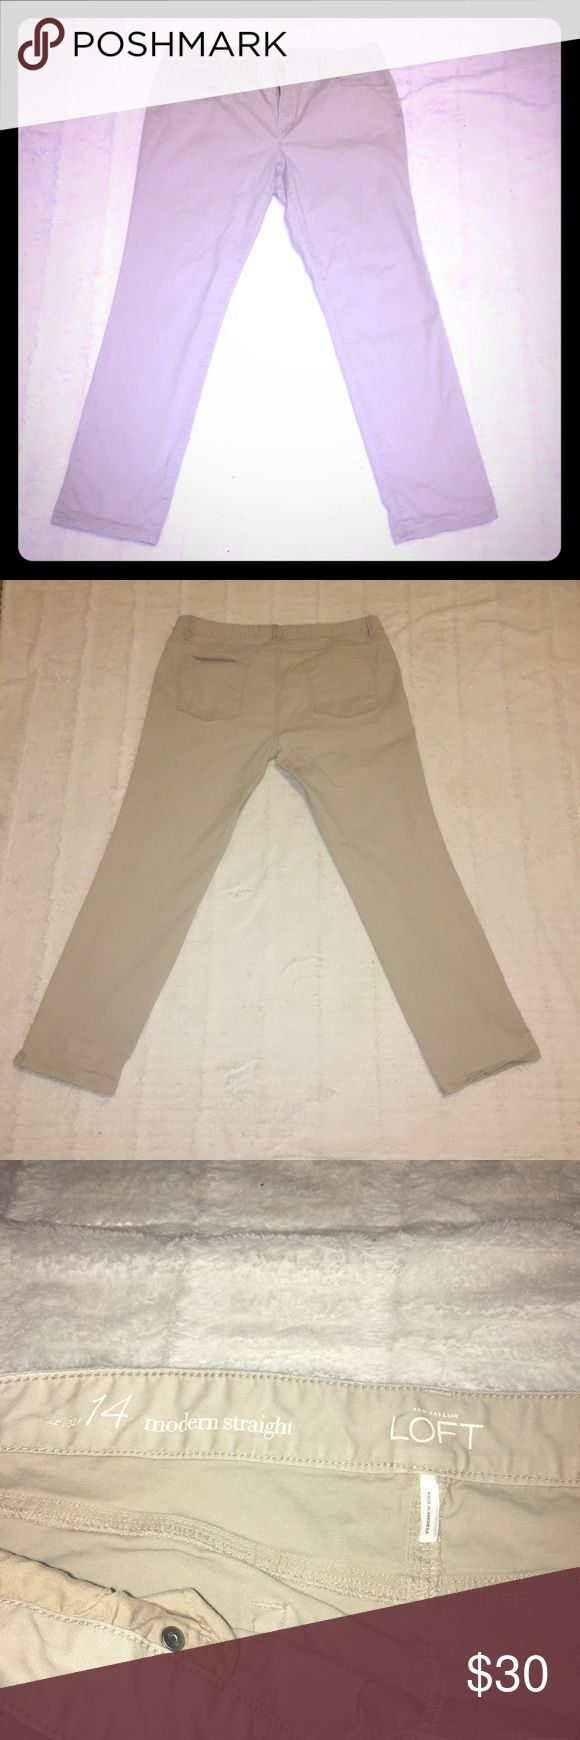 """Loft tan jeans Used:  like new: 321 Tan LOFT modern straight, size 14, 98% cotton 2% spandex. Around 16.5"""" width. Cover photo is only a cover photo for item please look at photos after the cover photo! The inseam is about 28"""" LOFT Jeans"""